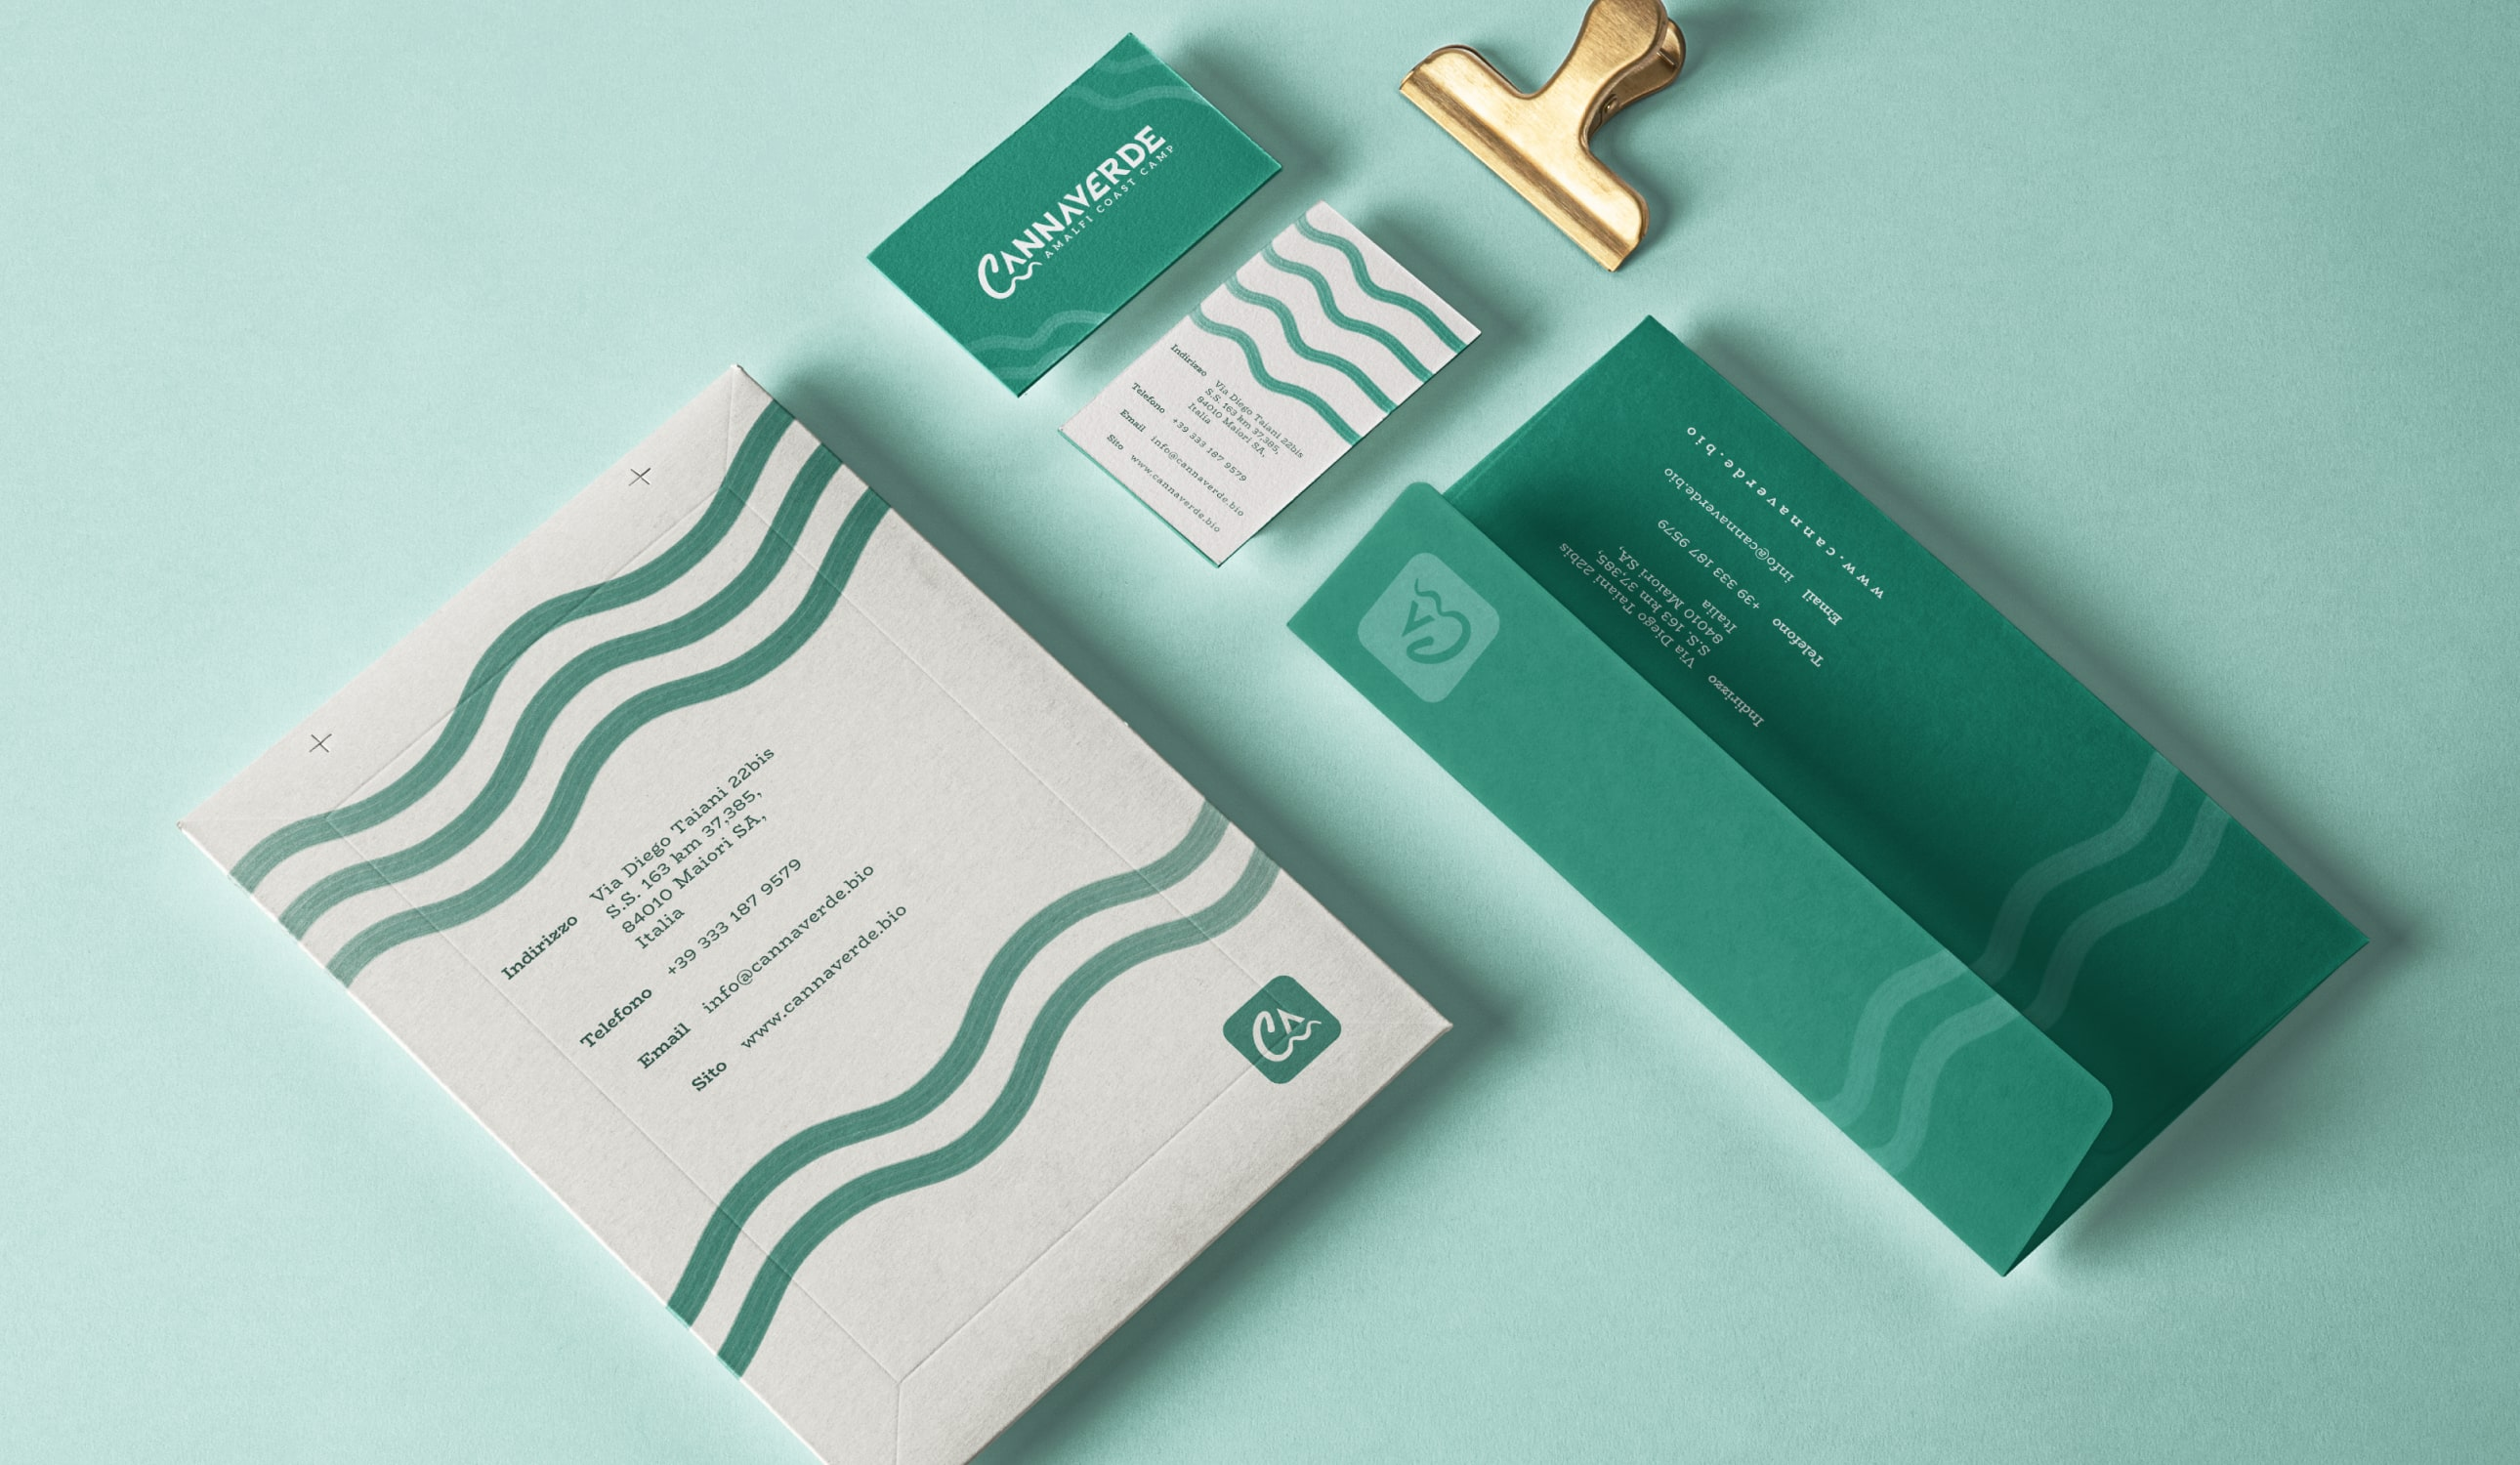 A stationary made out of an envelope and business card for Cannaverde.